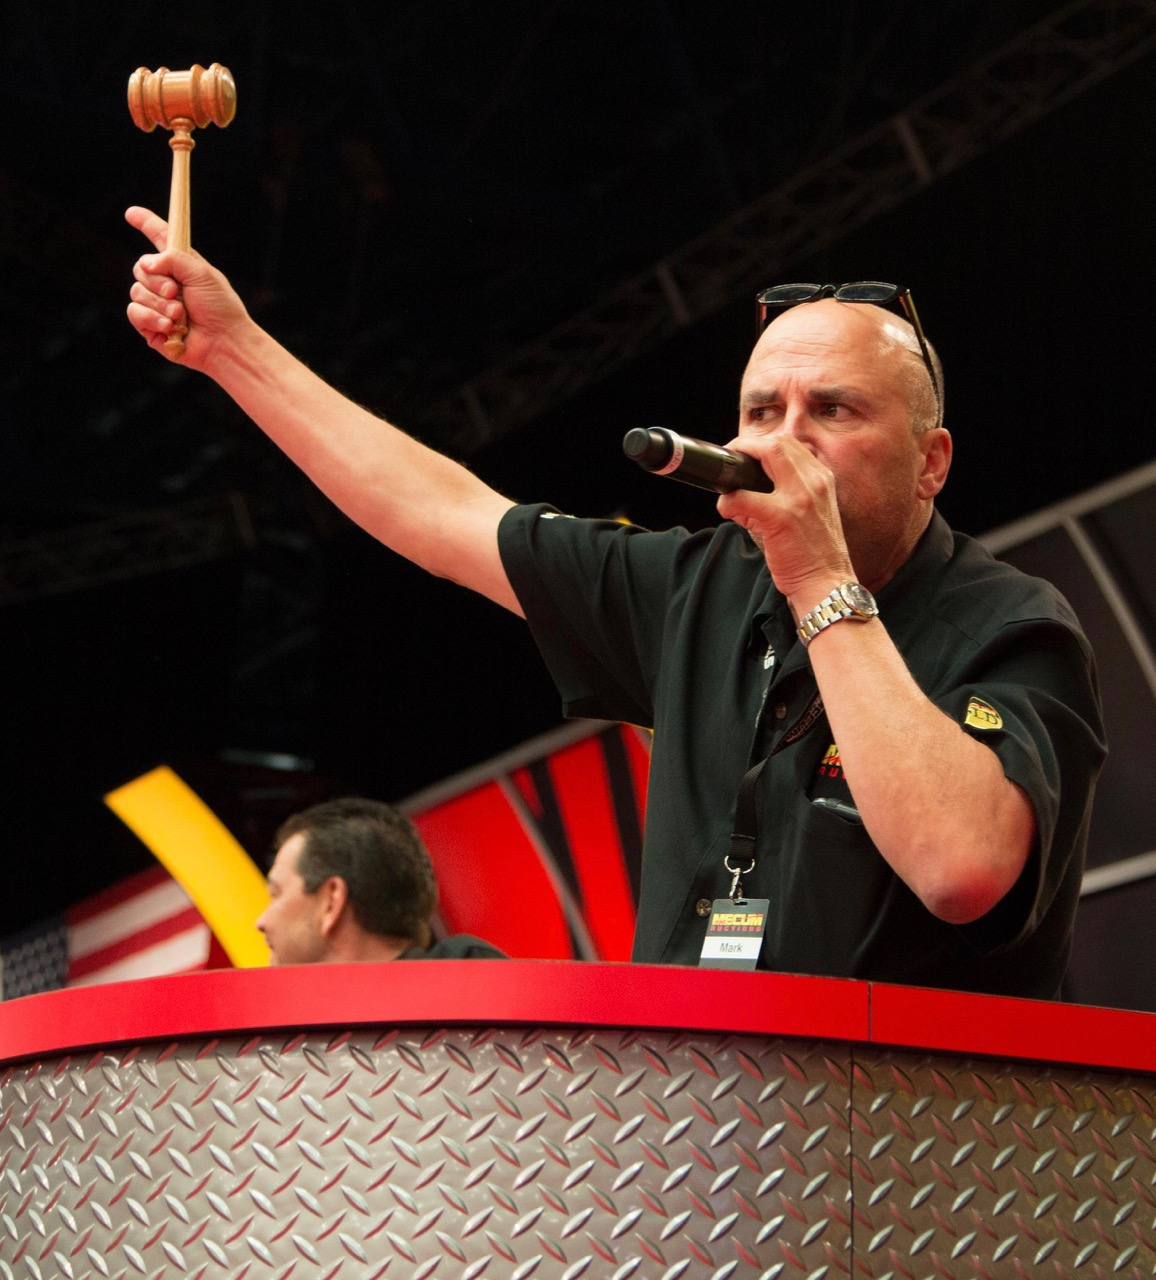 Interview: Mark Delzell, Chief Auctioneer, Mecum Auctions